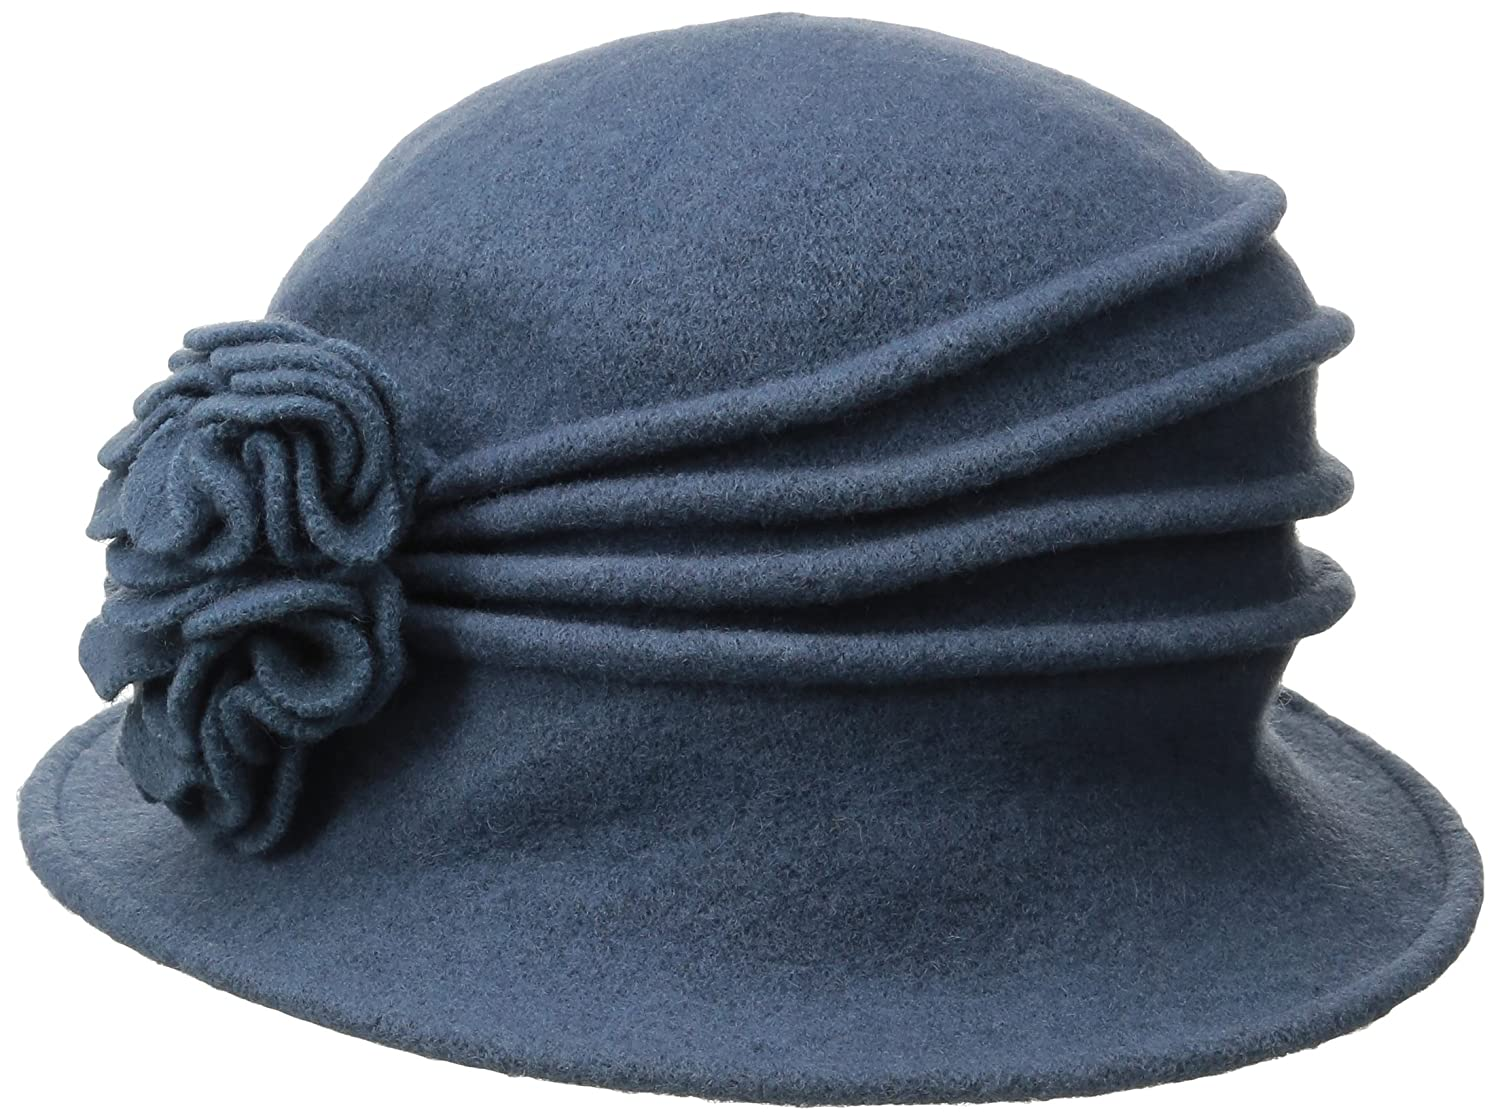 ab934d36579 Scala Women s Boiled Wool Cloche Hat with Flower